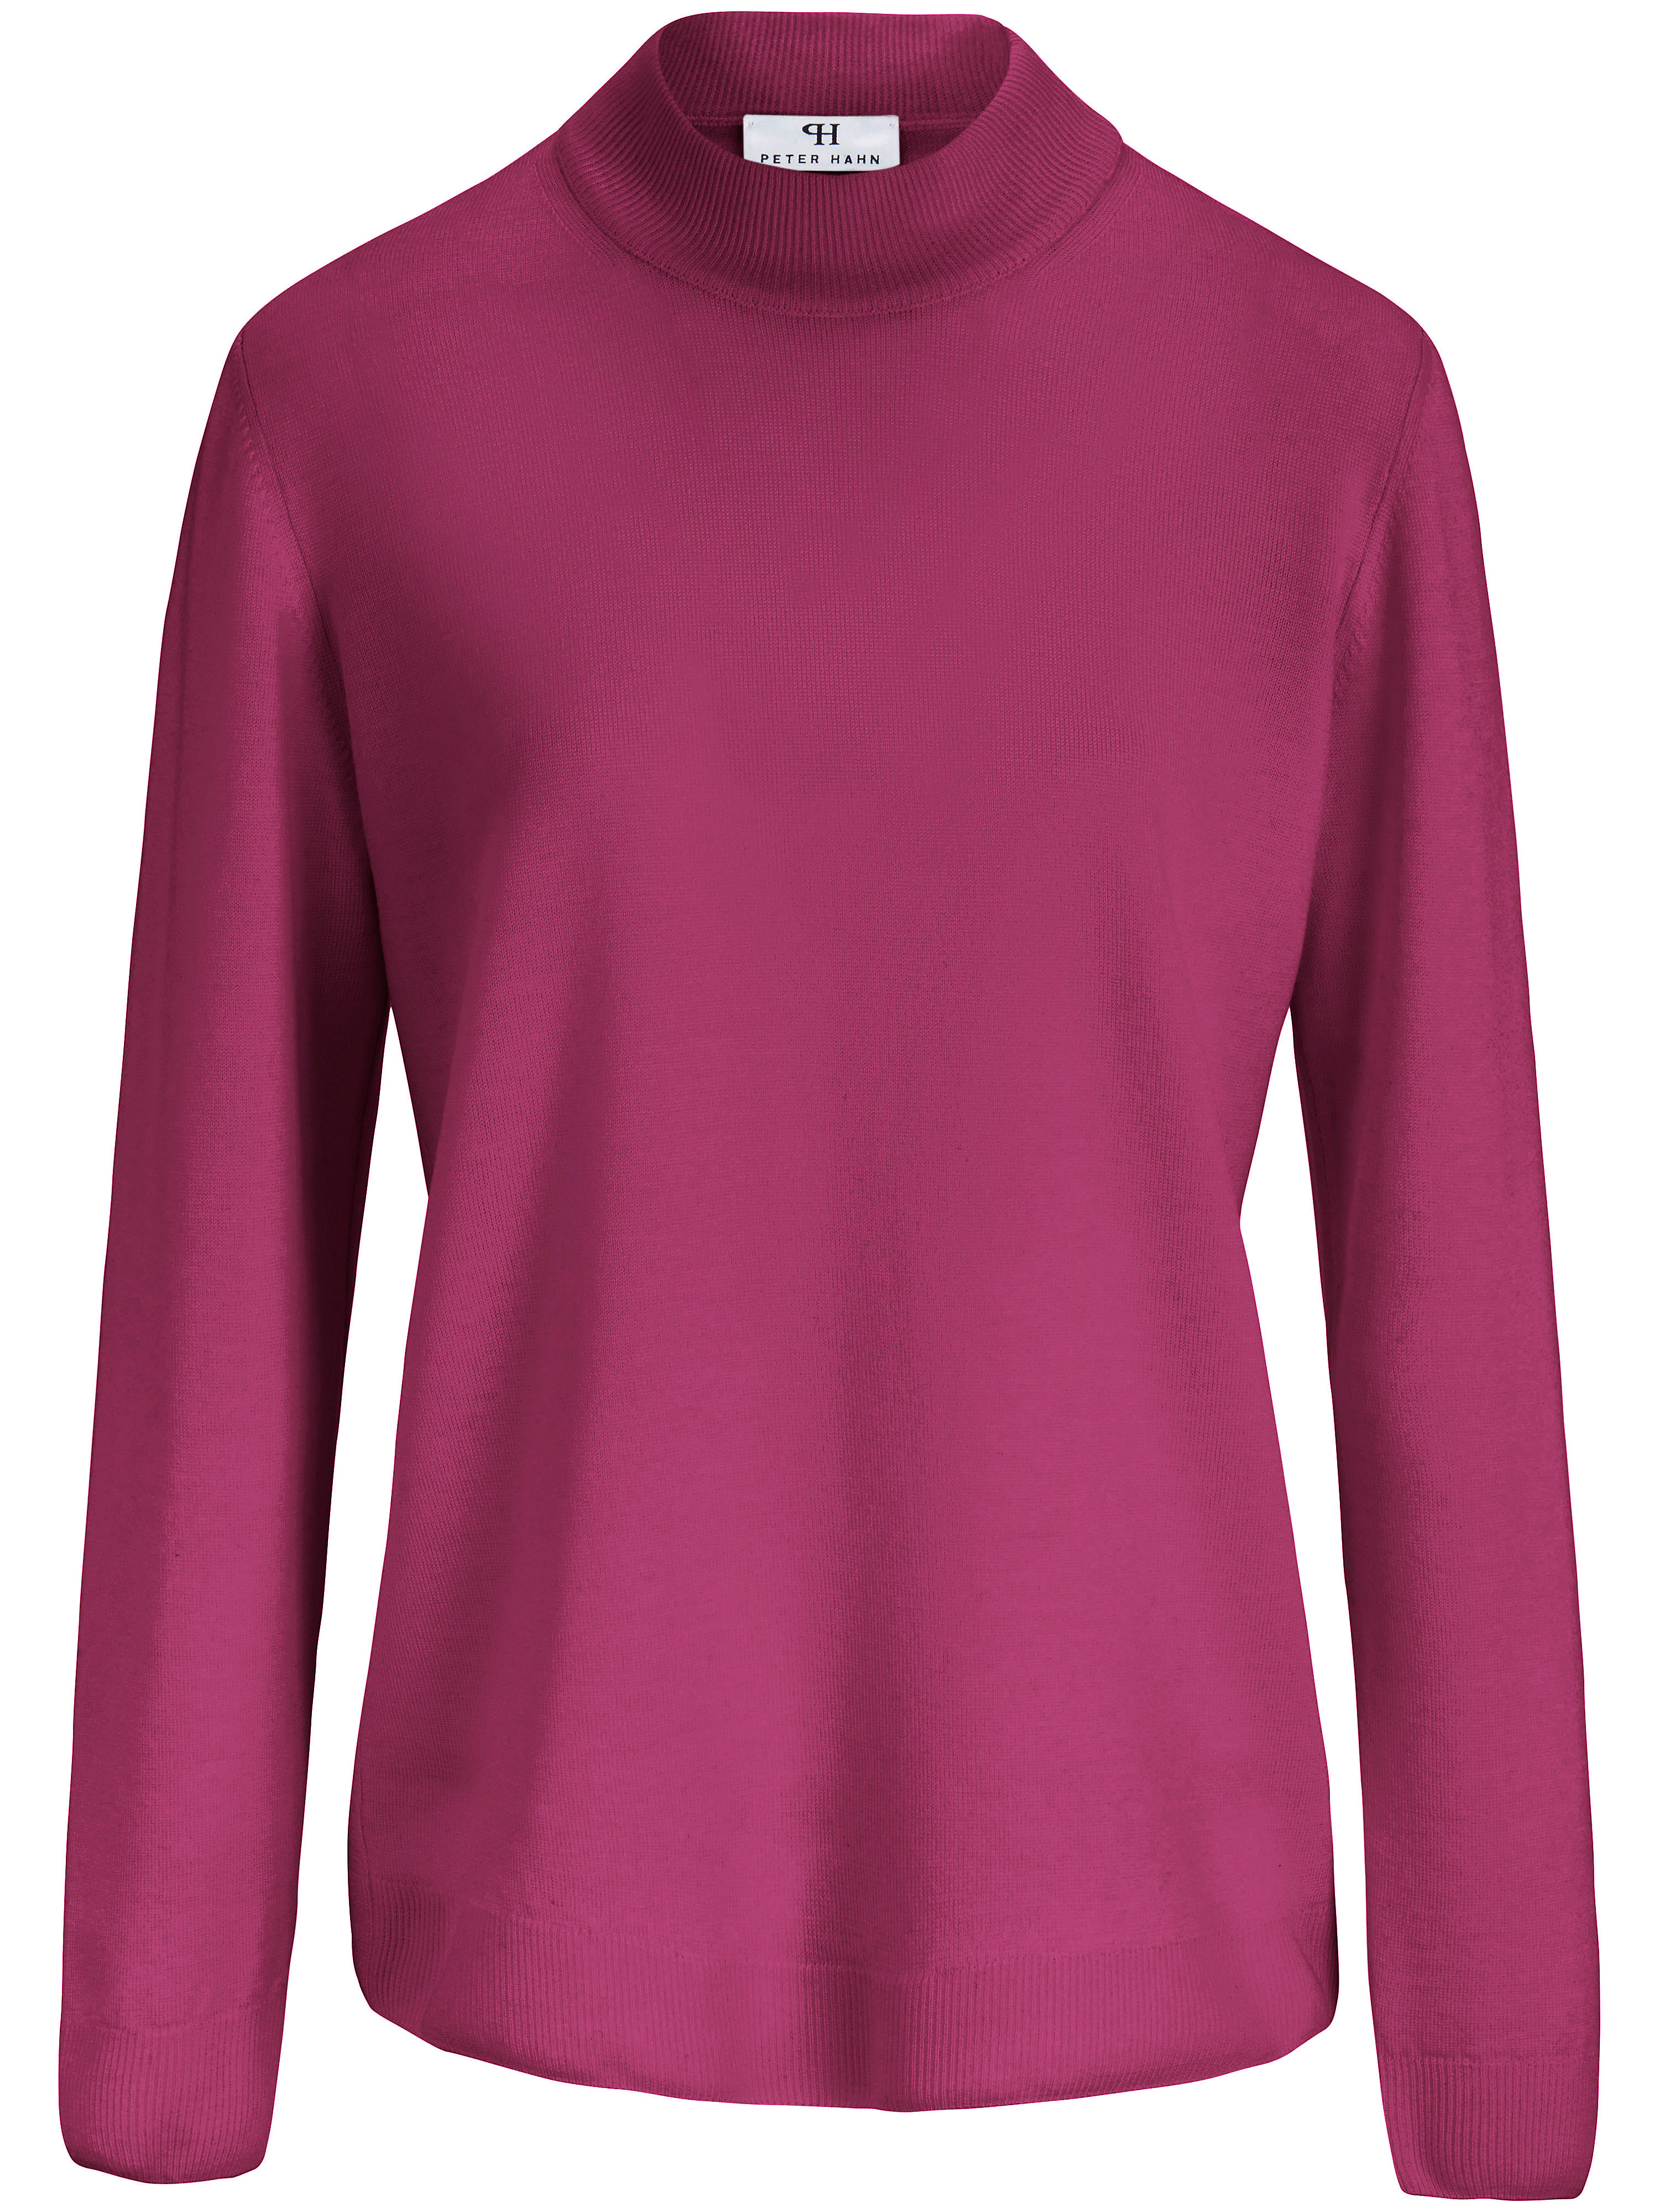 Le pull 100% laine vierge  Peter Hahn fuchsia taille 40